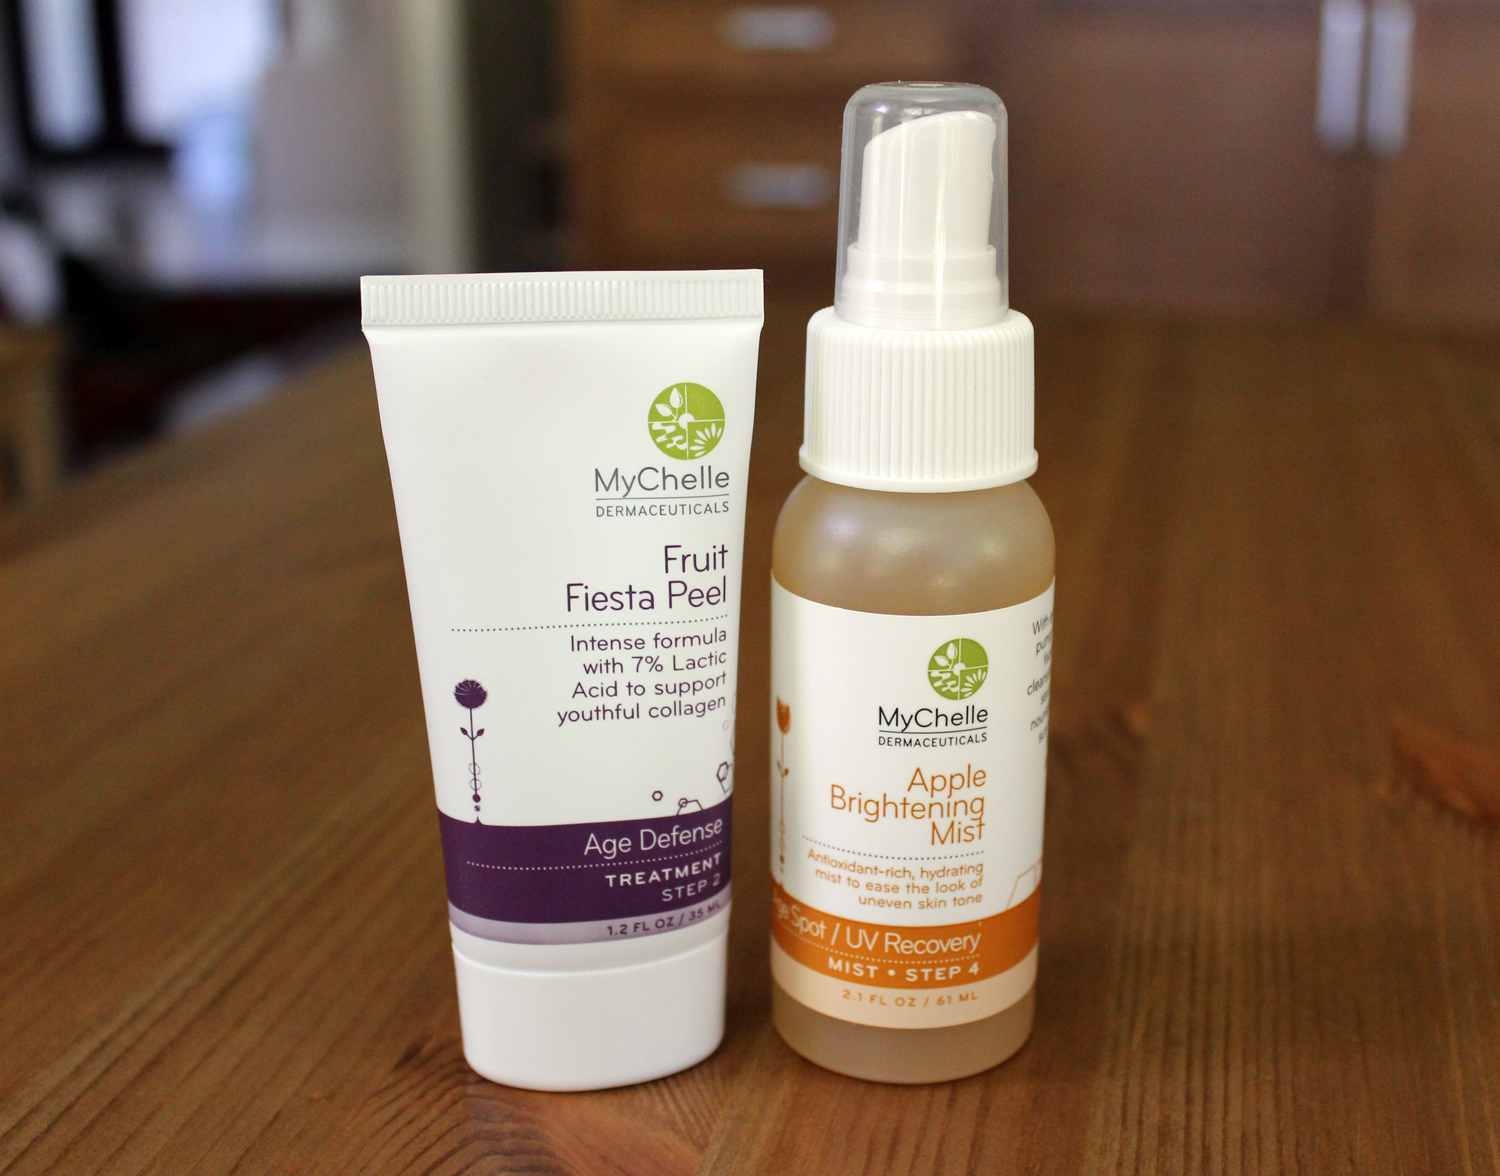 Mychelle Archives - Vegan Beauty Review   Vegan and Cruelty-Free ...